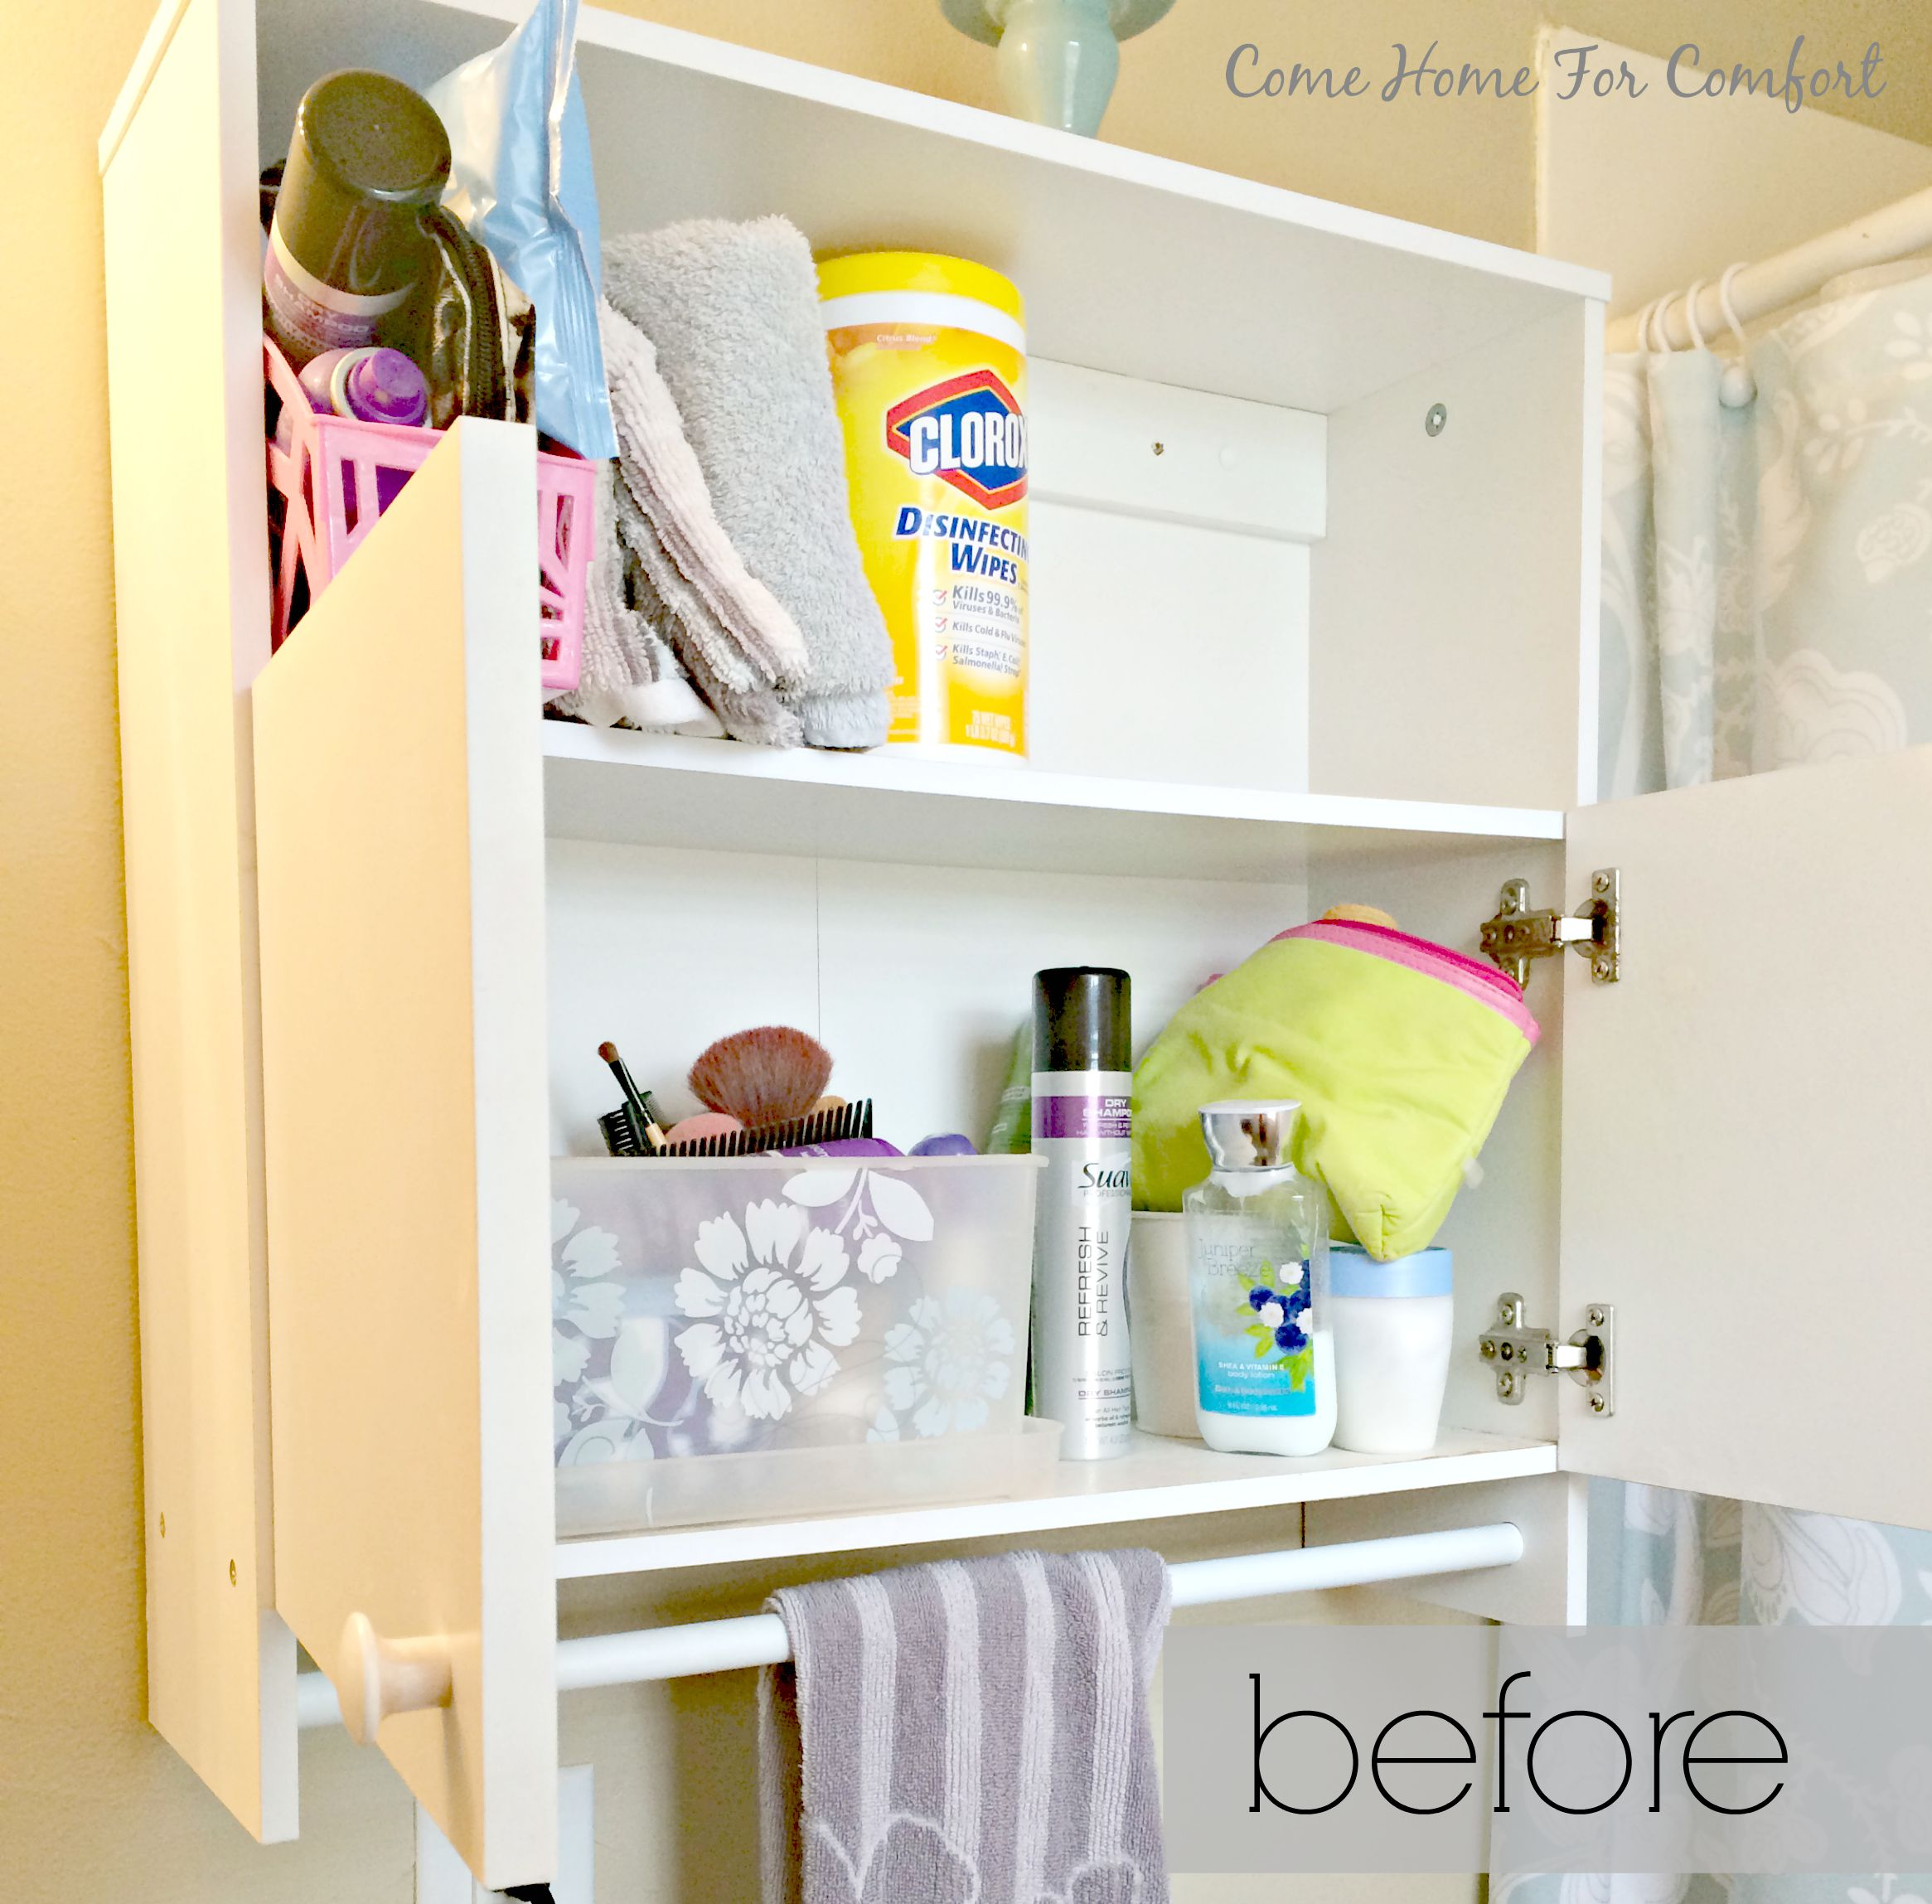 Bathroom Cabinet Re-Organization – Come Home For Comfort